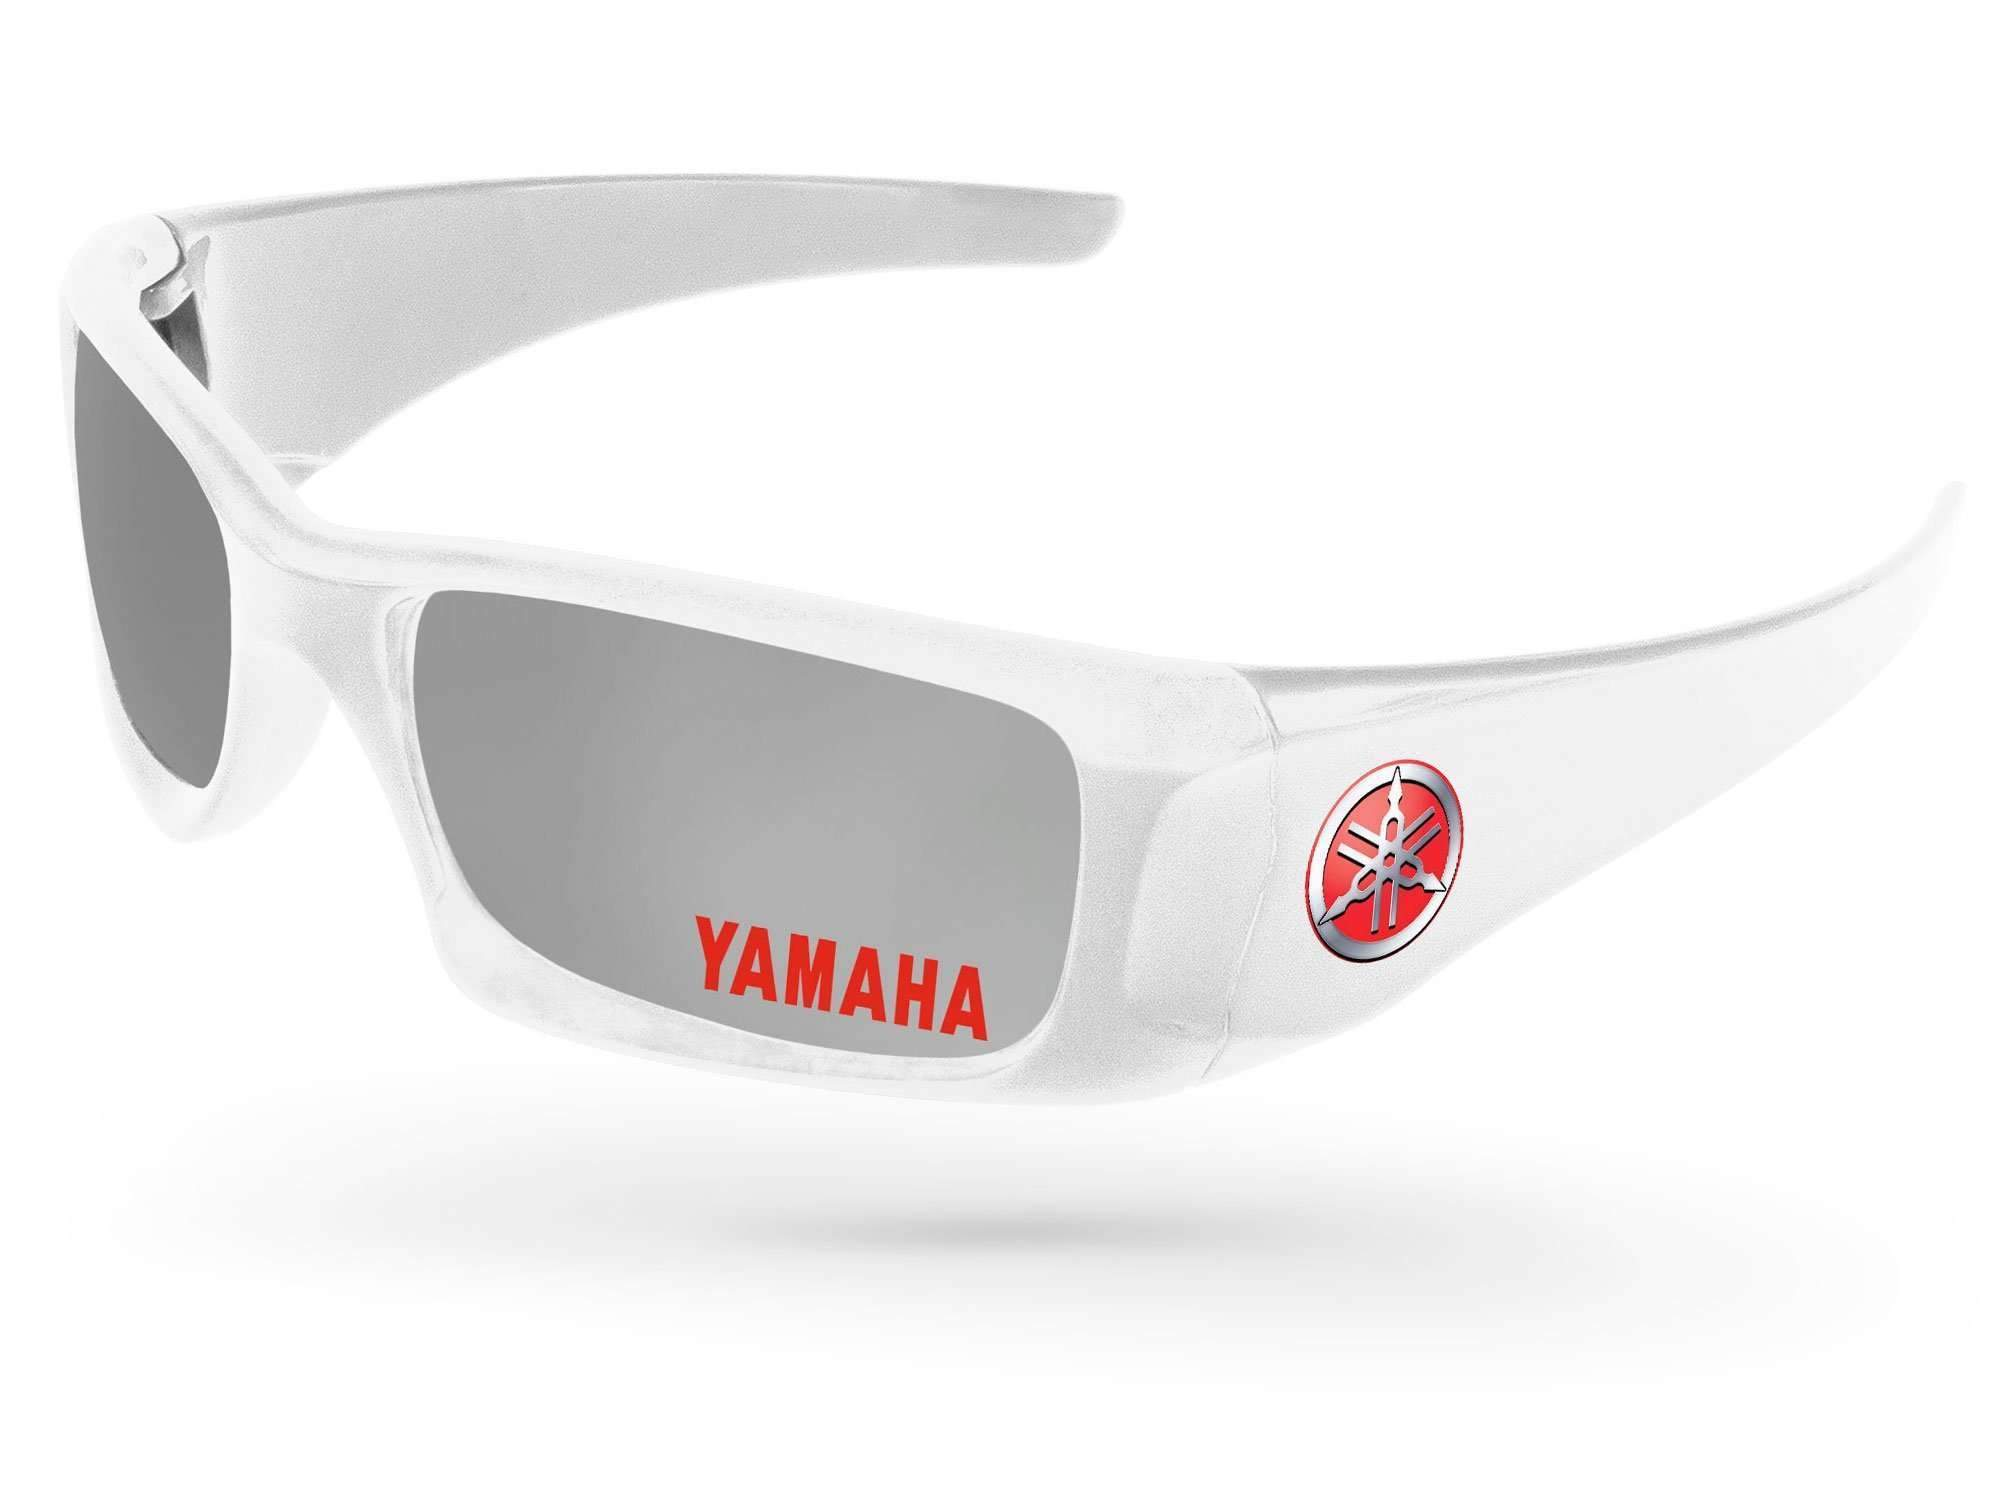 WM520 - Wrap Mirror Promotional Sunglasses w/ 1-color lens imprint & full-color temple imprint